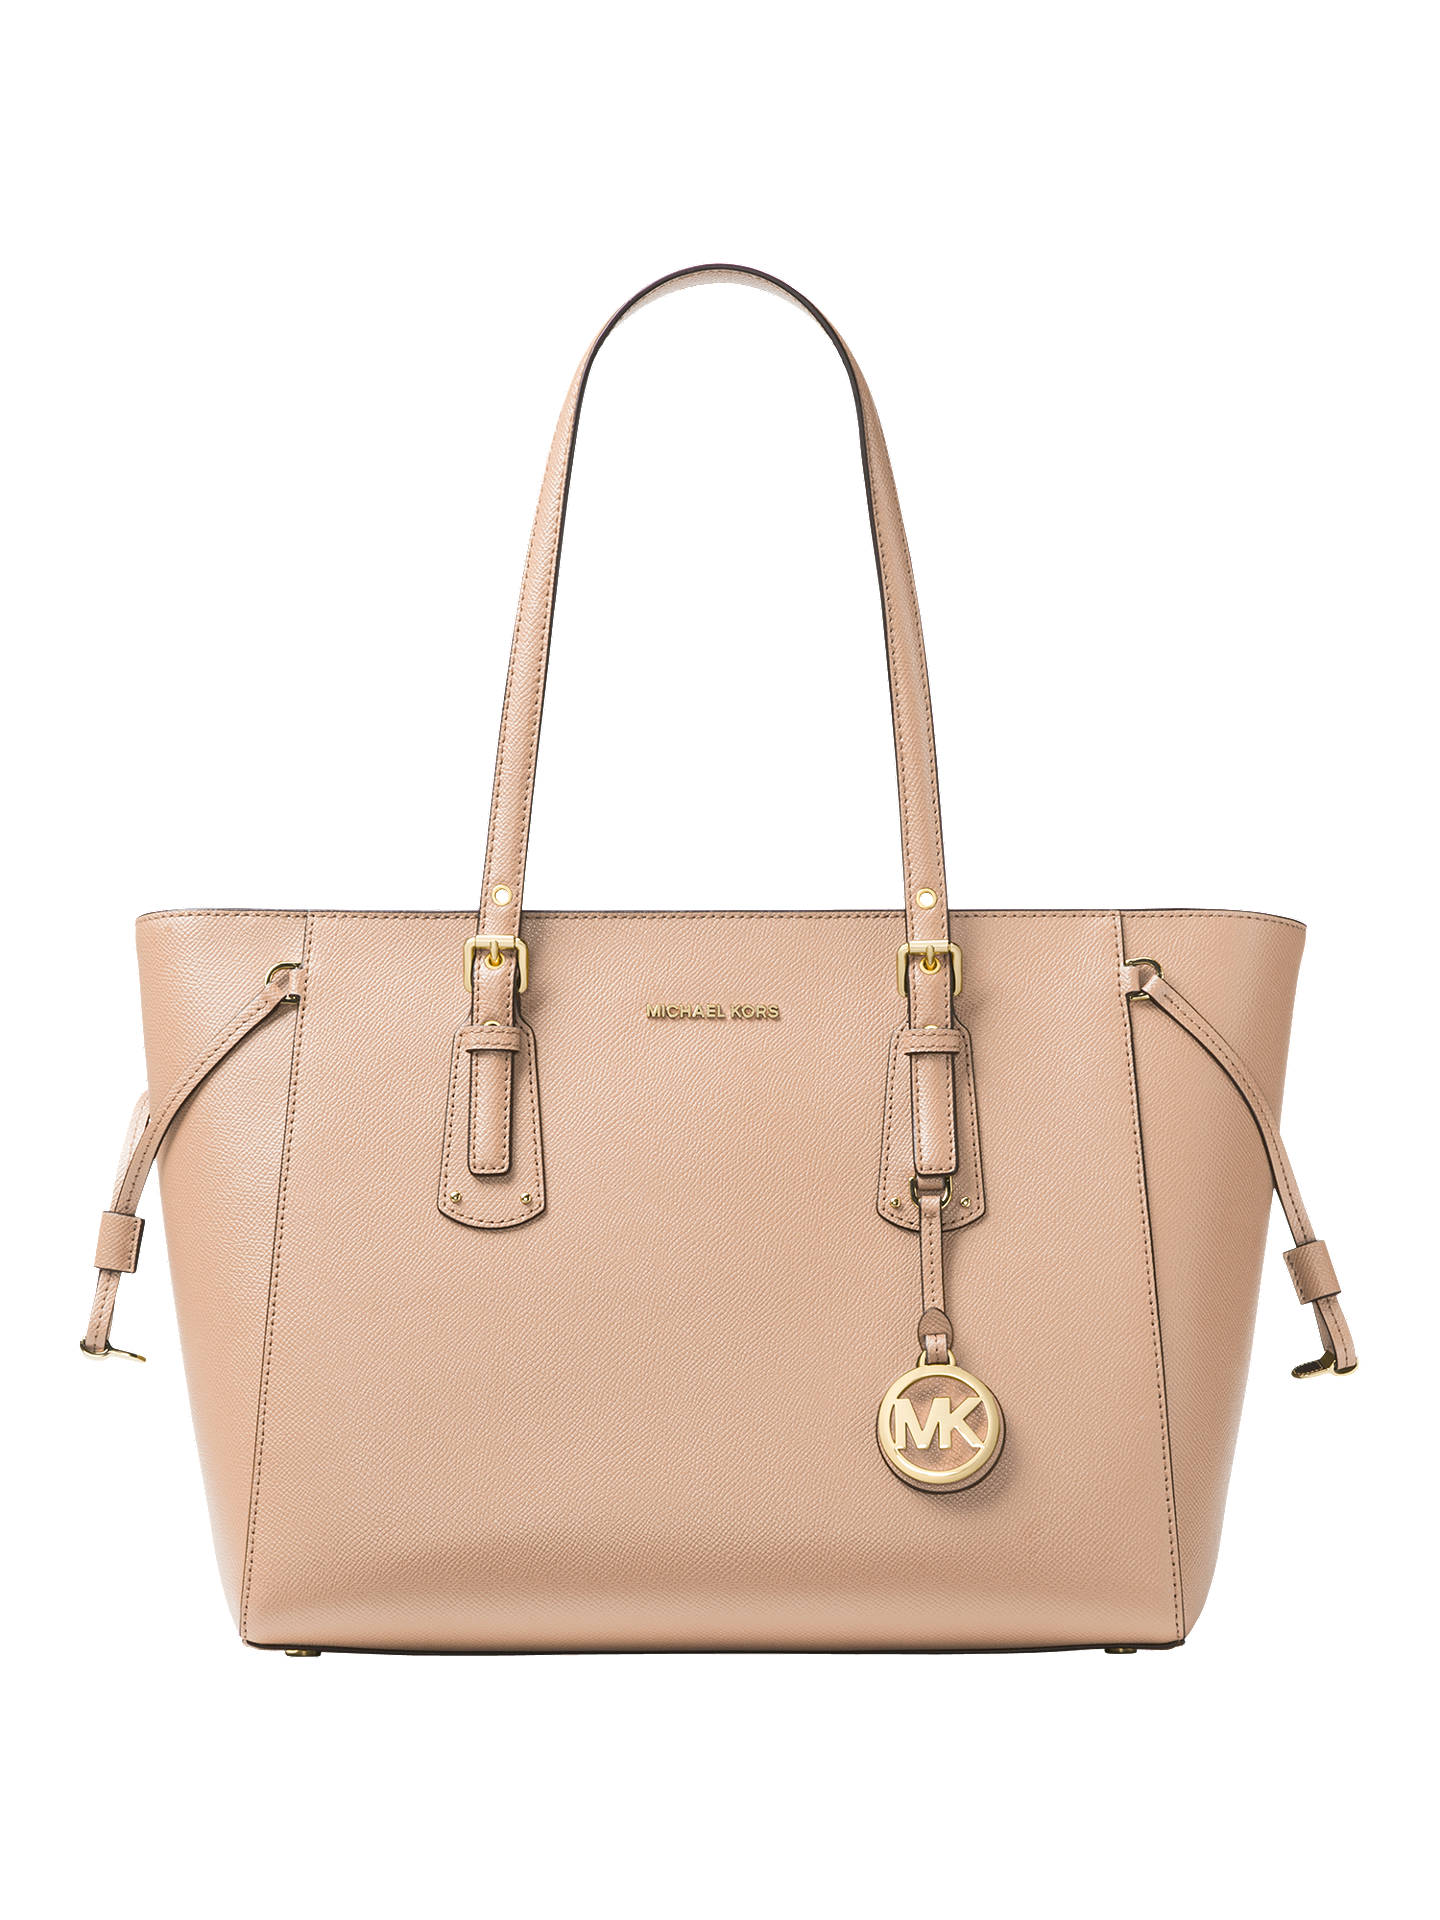 32562b37acf MICHAEL Michael Kors Voyager Leather Medium Tote Bag, Soft Pink